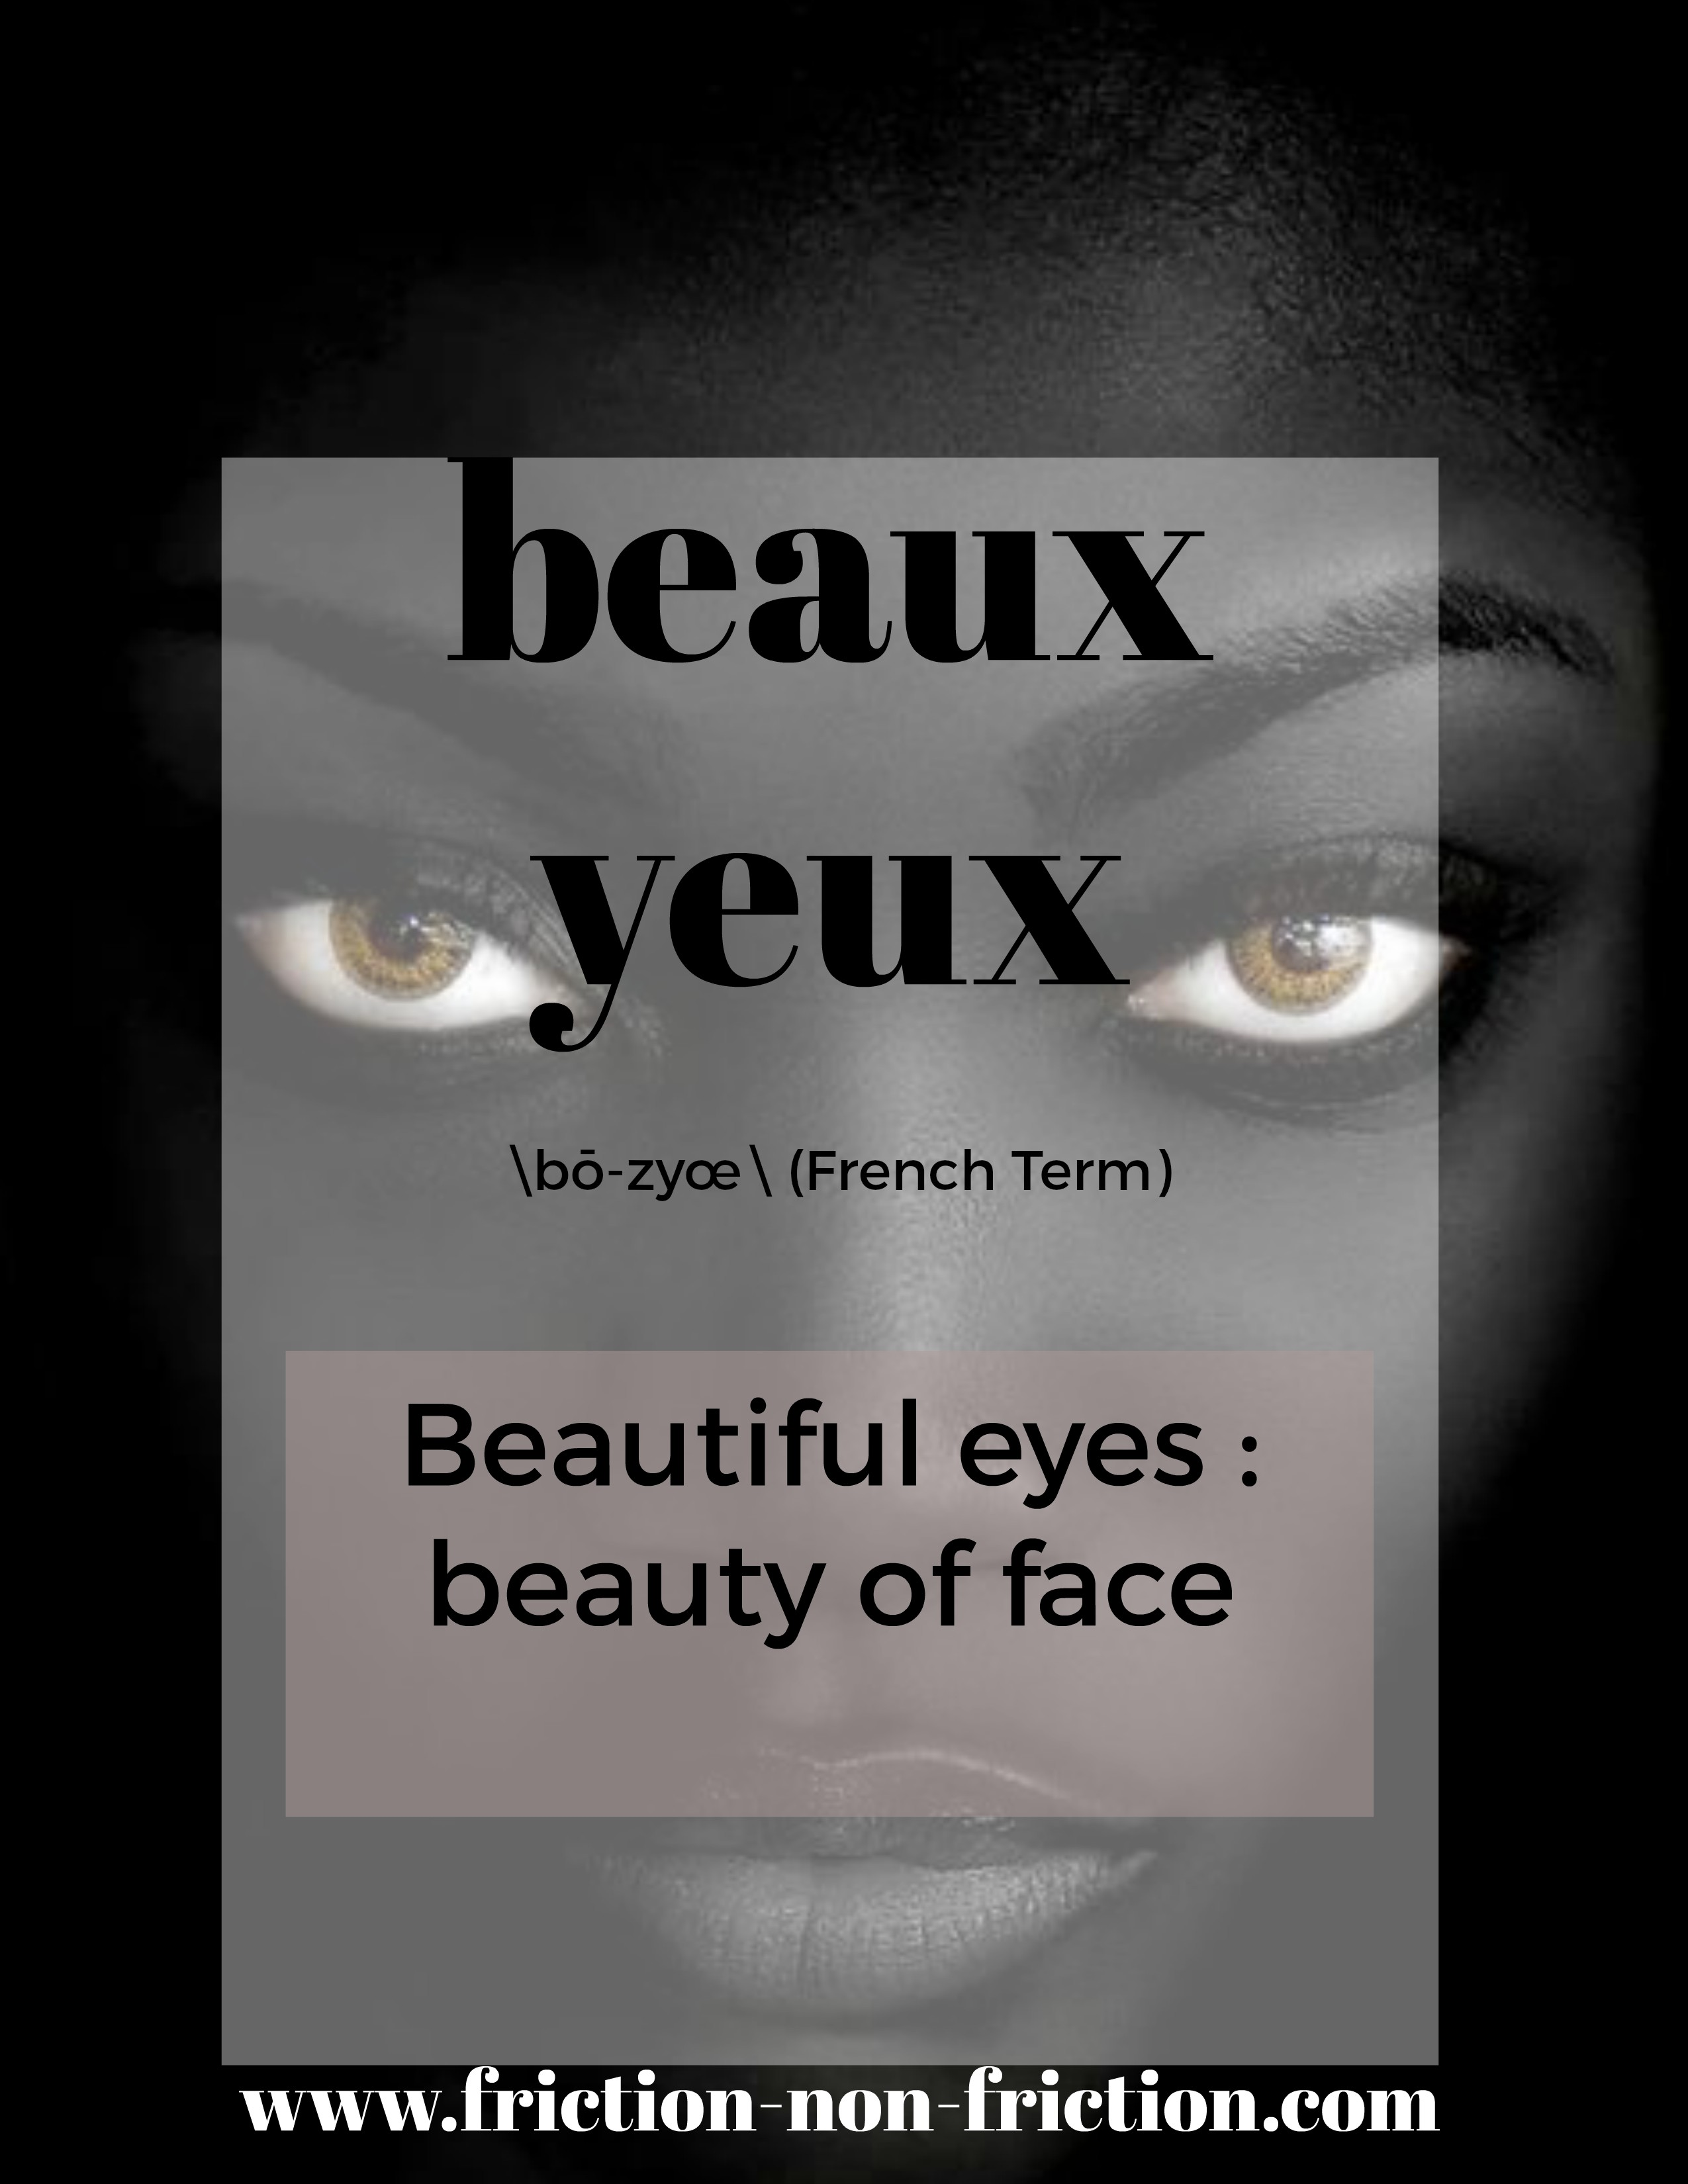 Beaux Yeux -- another great FRICTIONARY definition from Friction non Friction